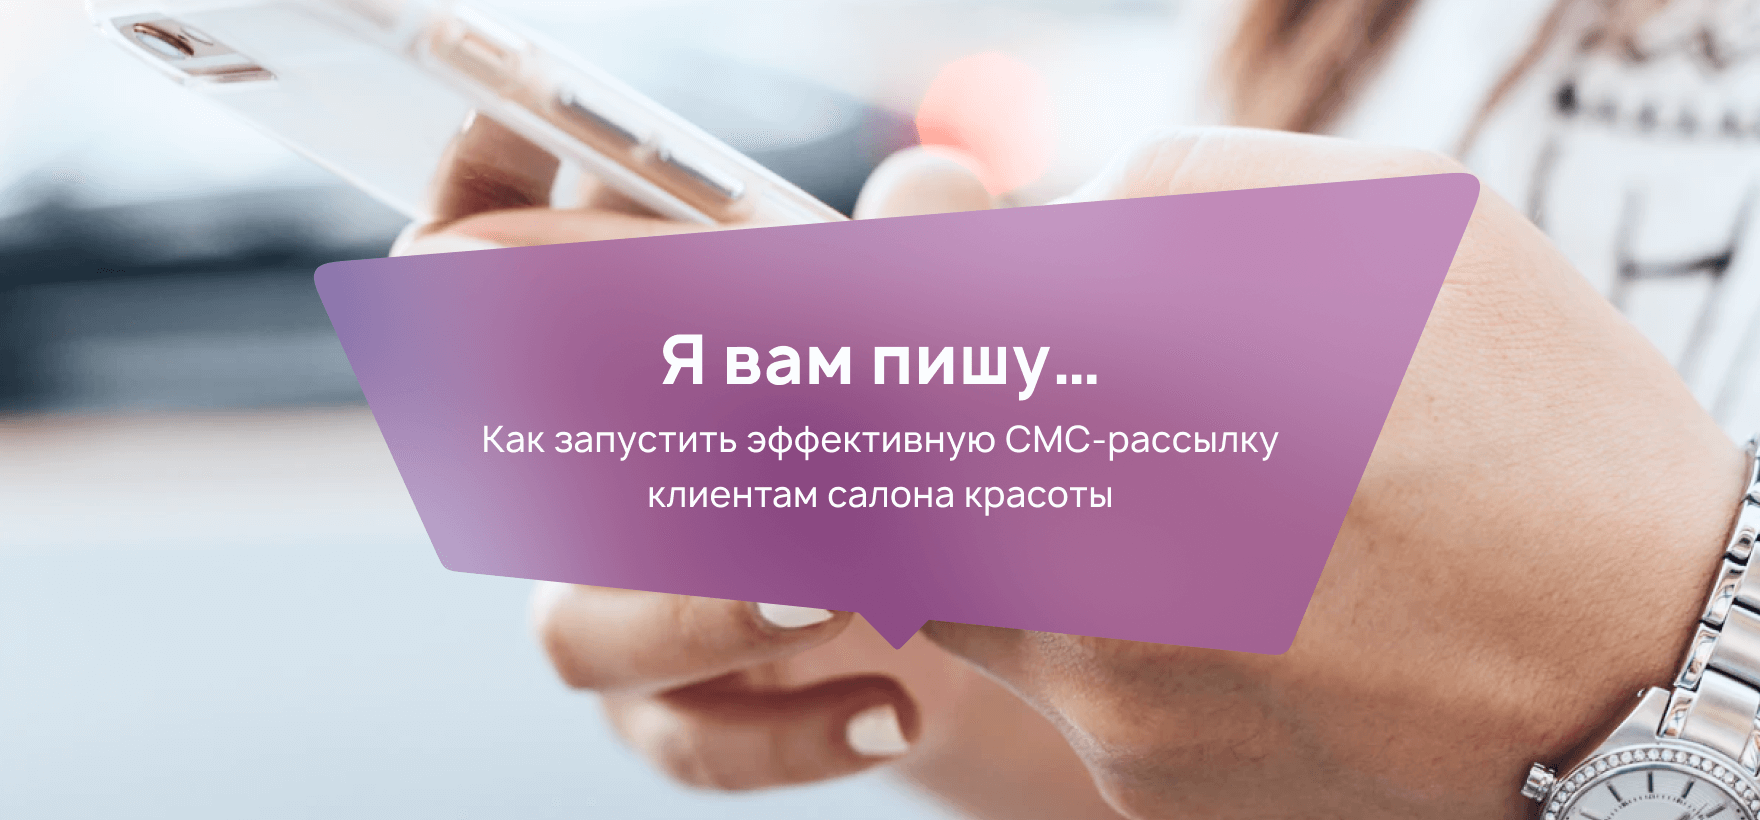 "<p class=""qtranxs-available-languages-message qtranxs-available-languages-message-en"">Sorry, this entry is only available in <a href=""https://beautyprosoftware.com/ru/blog/russkij-pravila-sterilizacii-manikjurnyh-instrumentov-kak-ne-navredit-klientam-salona-krasoty/"" class=""qtranxs-available-language-link qtranxs-available-language-link-ru"" title=""Русский"">Russian</a>.</p>"